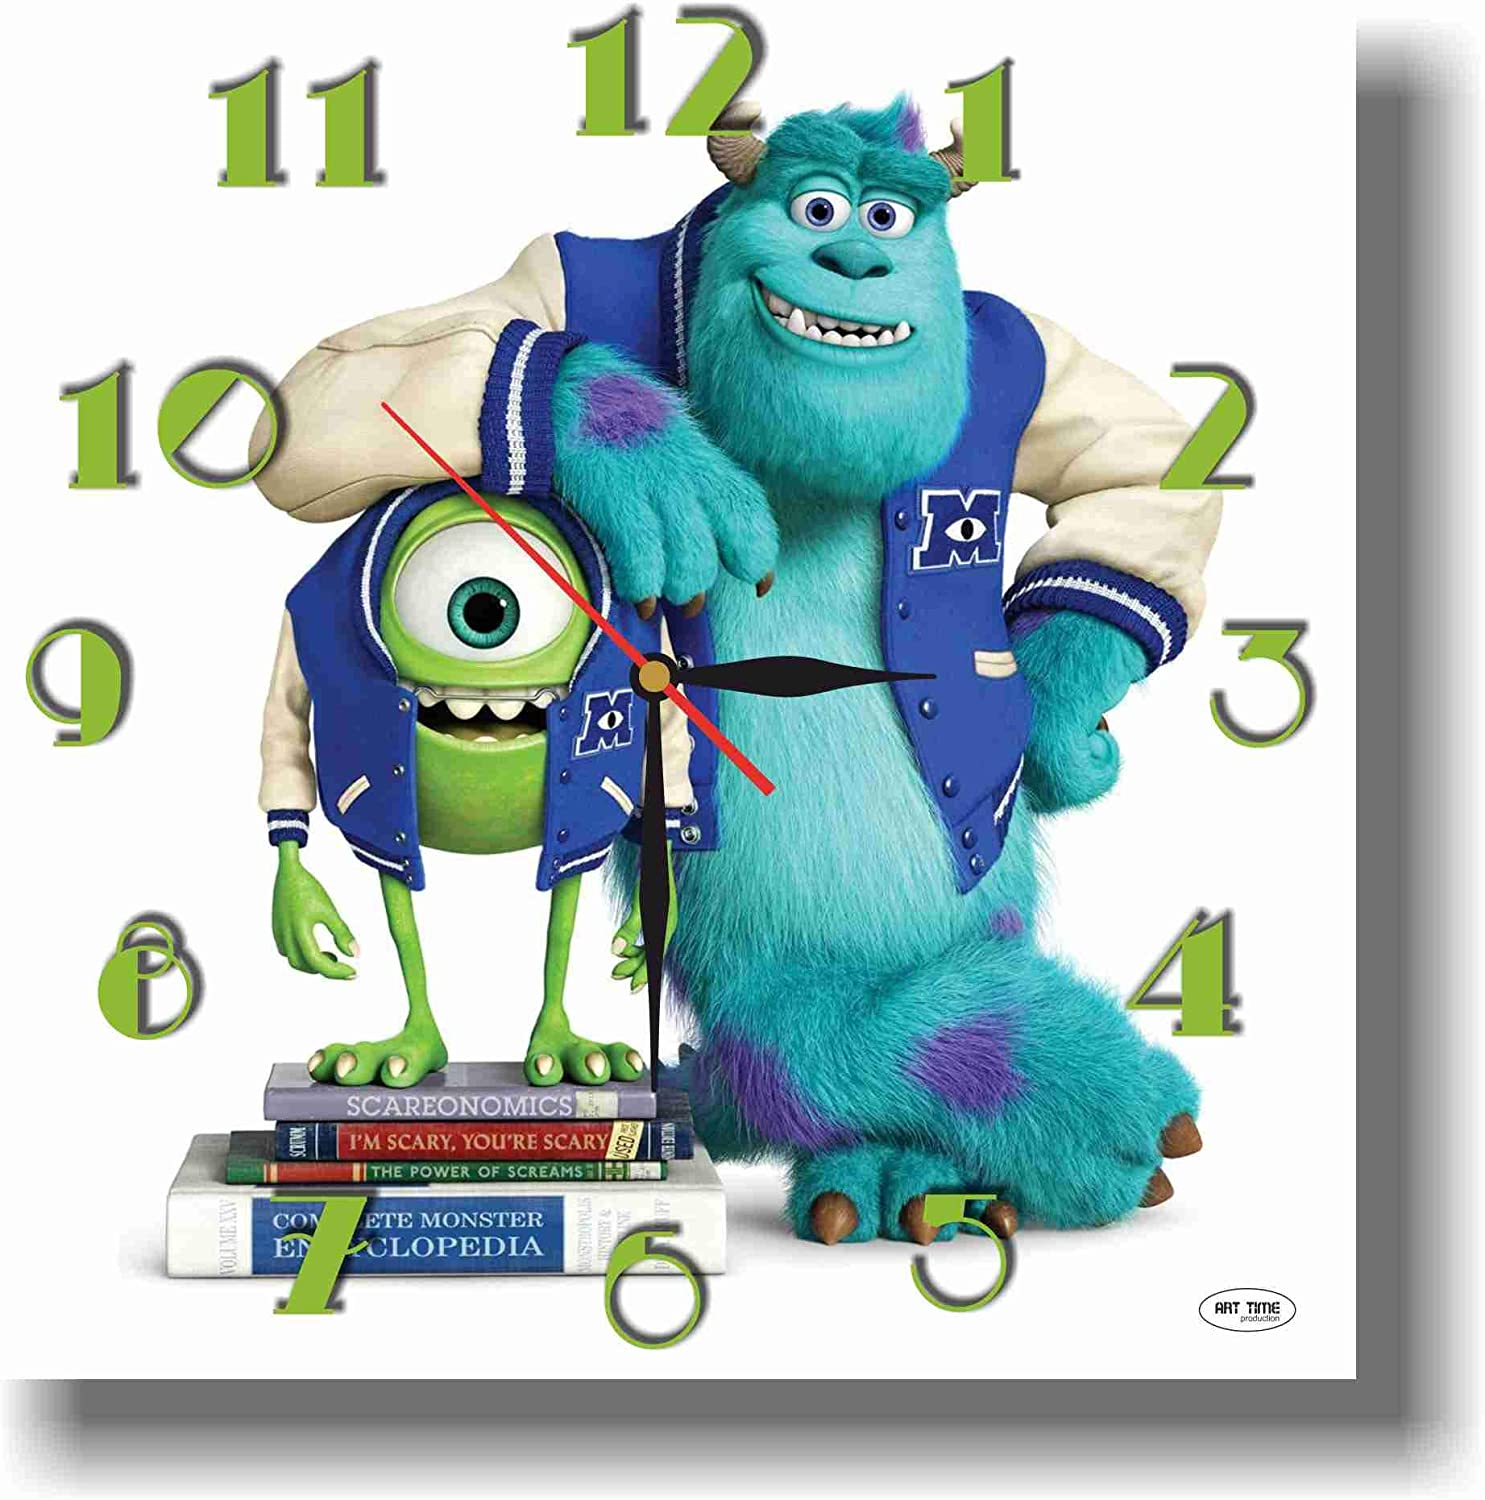 MAGIC WALL CLOCK FOR DISNEY FANS Monsters Inc 11'' Handmade made of acrylic glass - Get unique décor for home or office – Best gift ideas for kids, friends, parents and your soul mates